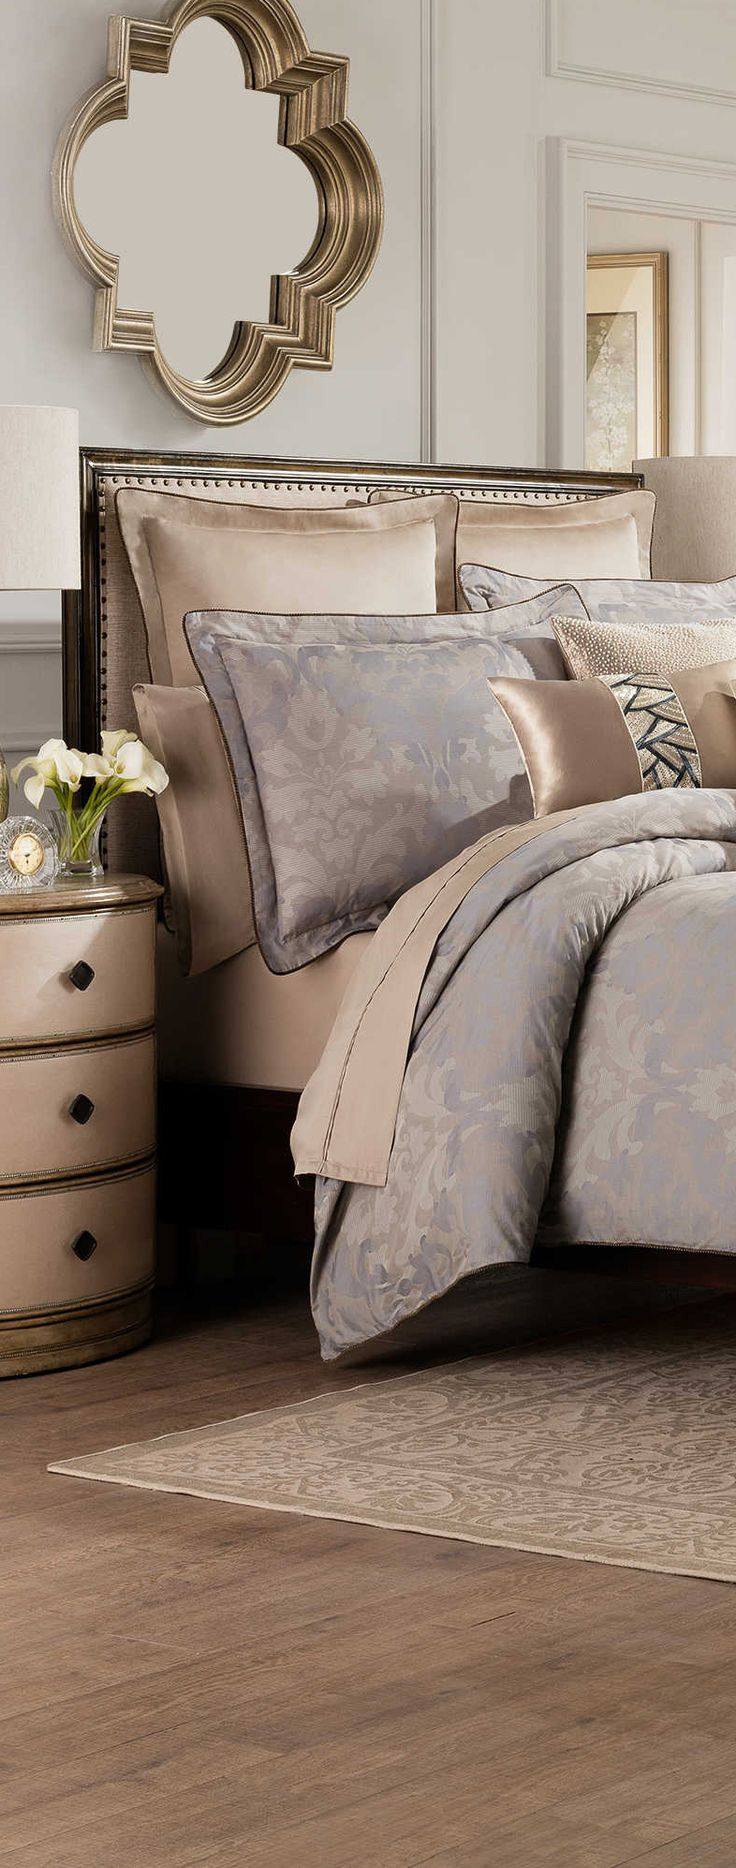 1000 ideas about luxurious bedrooms on pinterest luxury 12253 | 7bc559e0cd58b8555cf9111e1cdc49a1